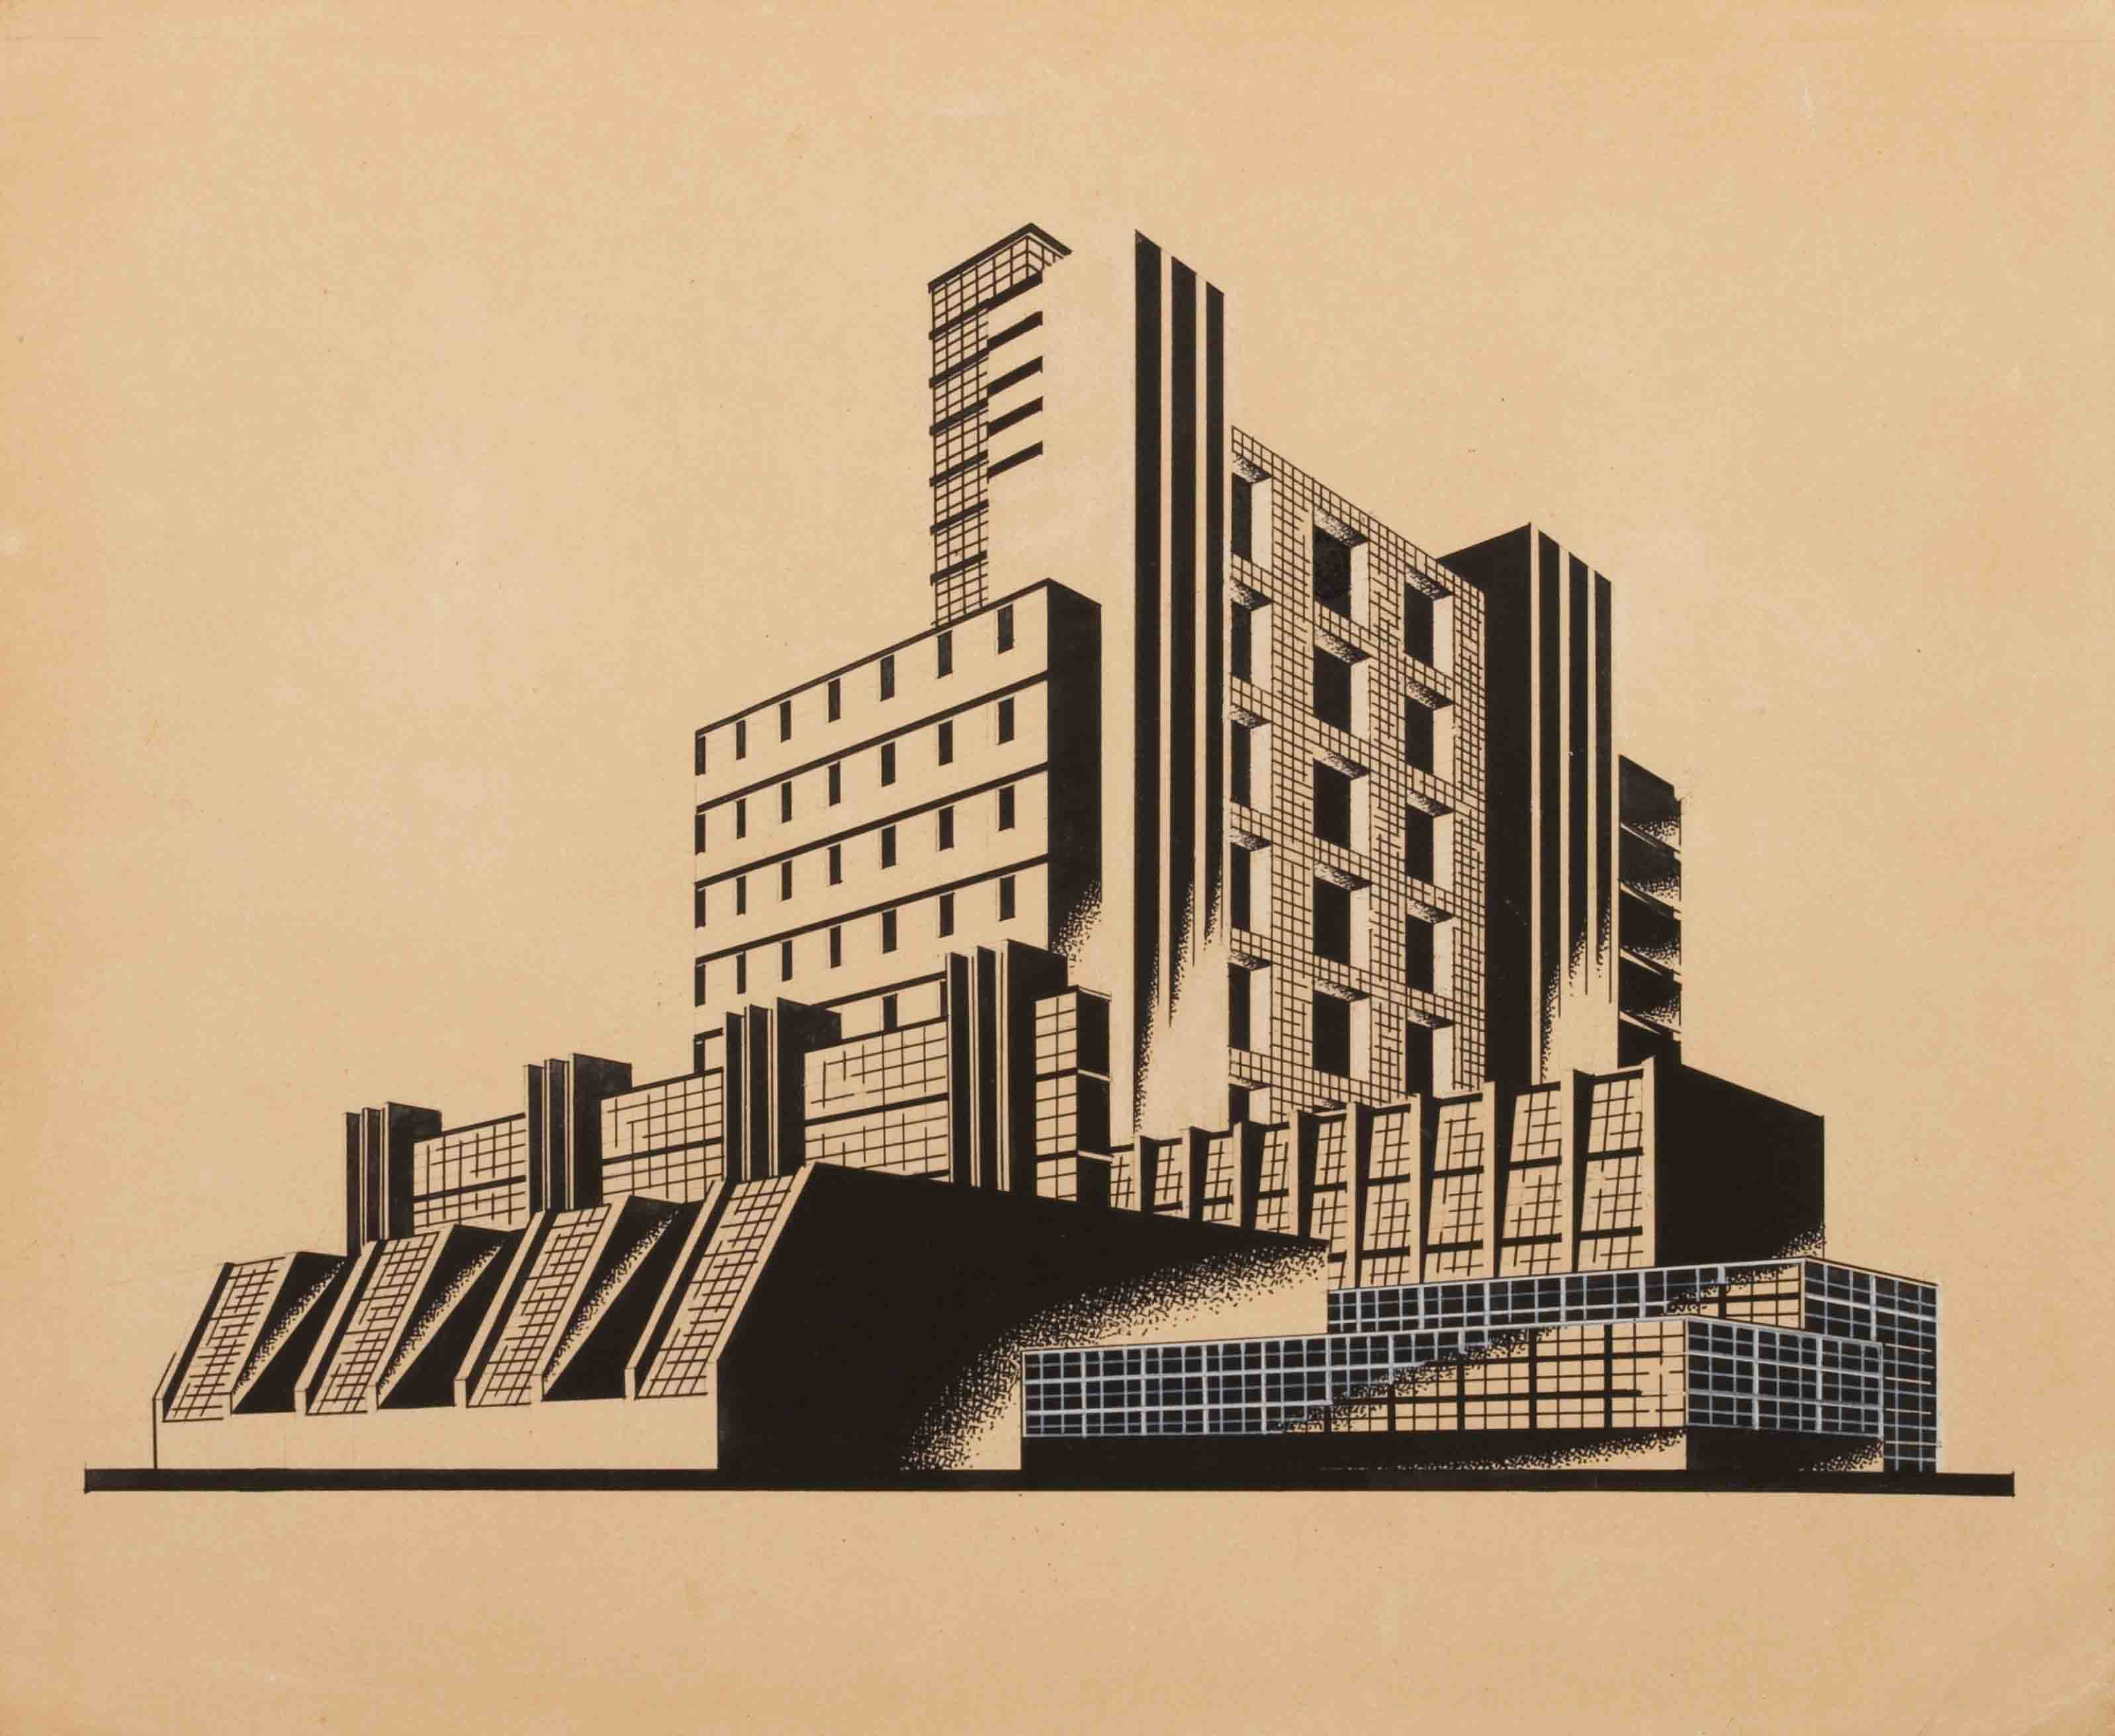 I-JA Synthetic Silk Factory (first variant) from the series The Construction of Architectural and Machine Forms, late 1920s - Yakov Chernikhov